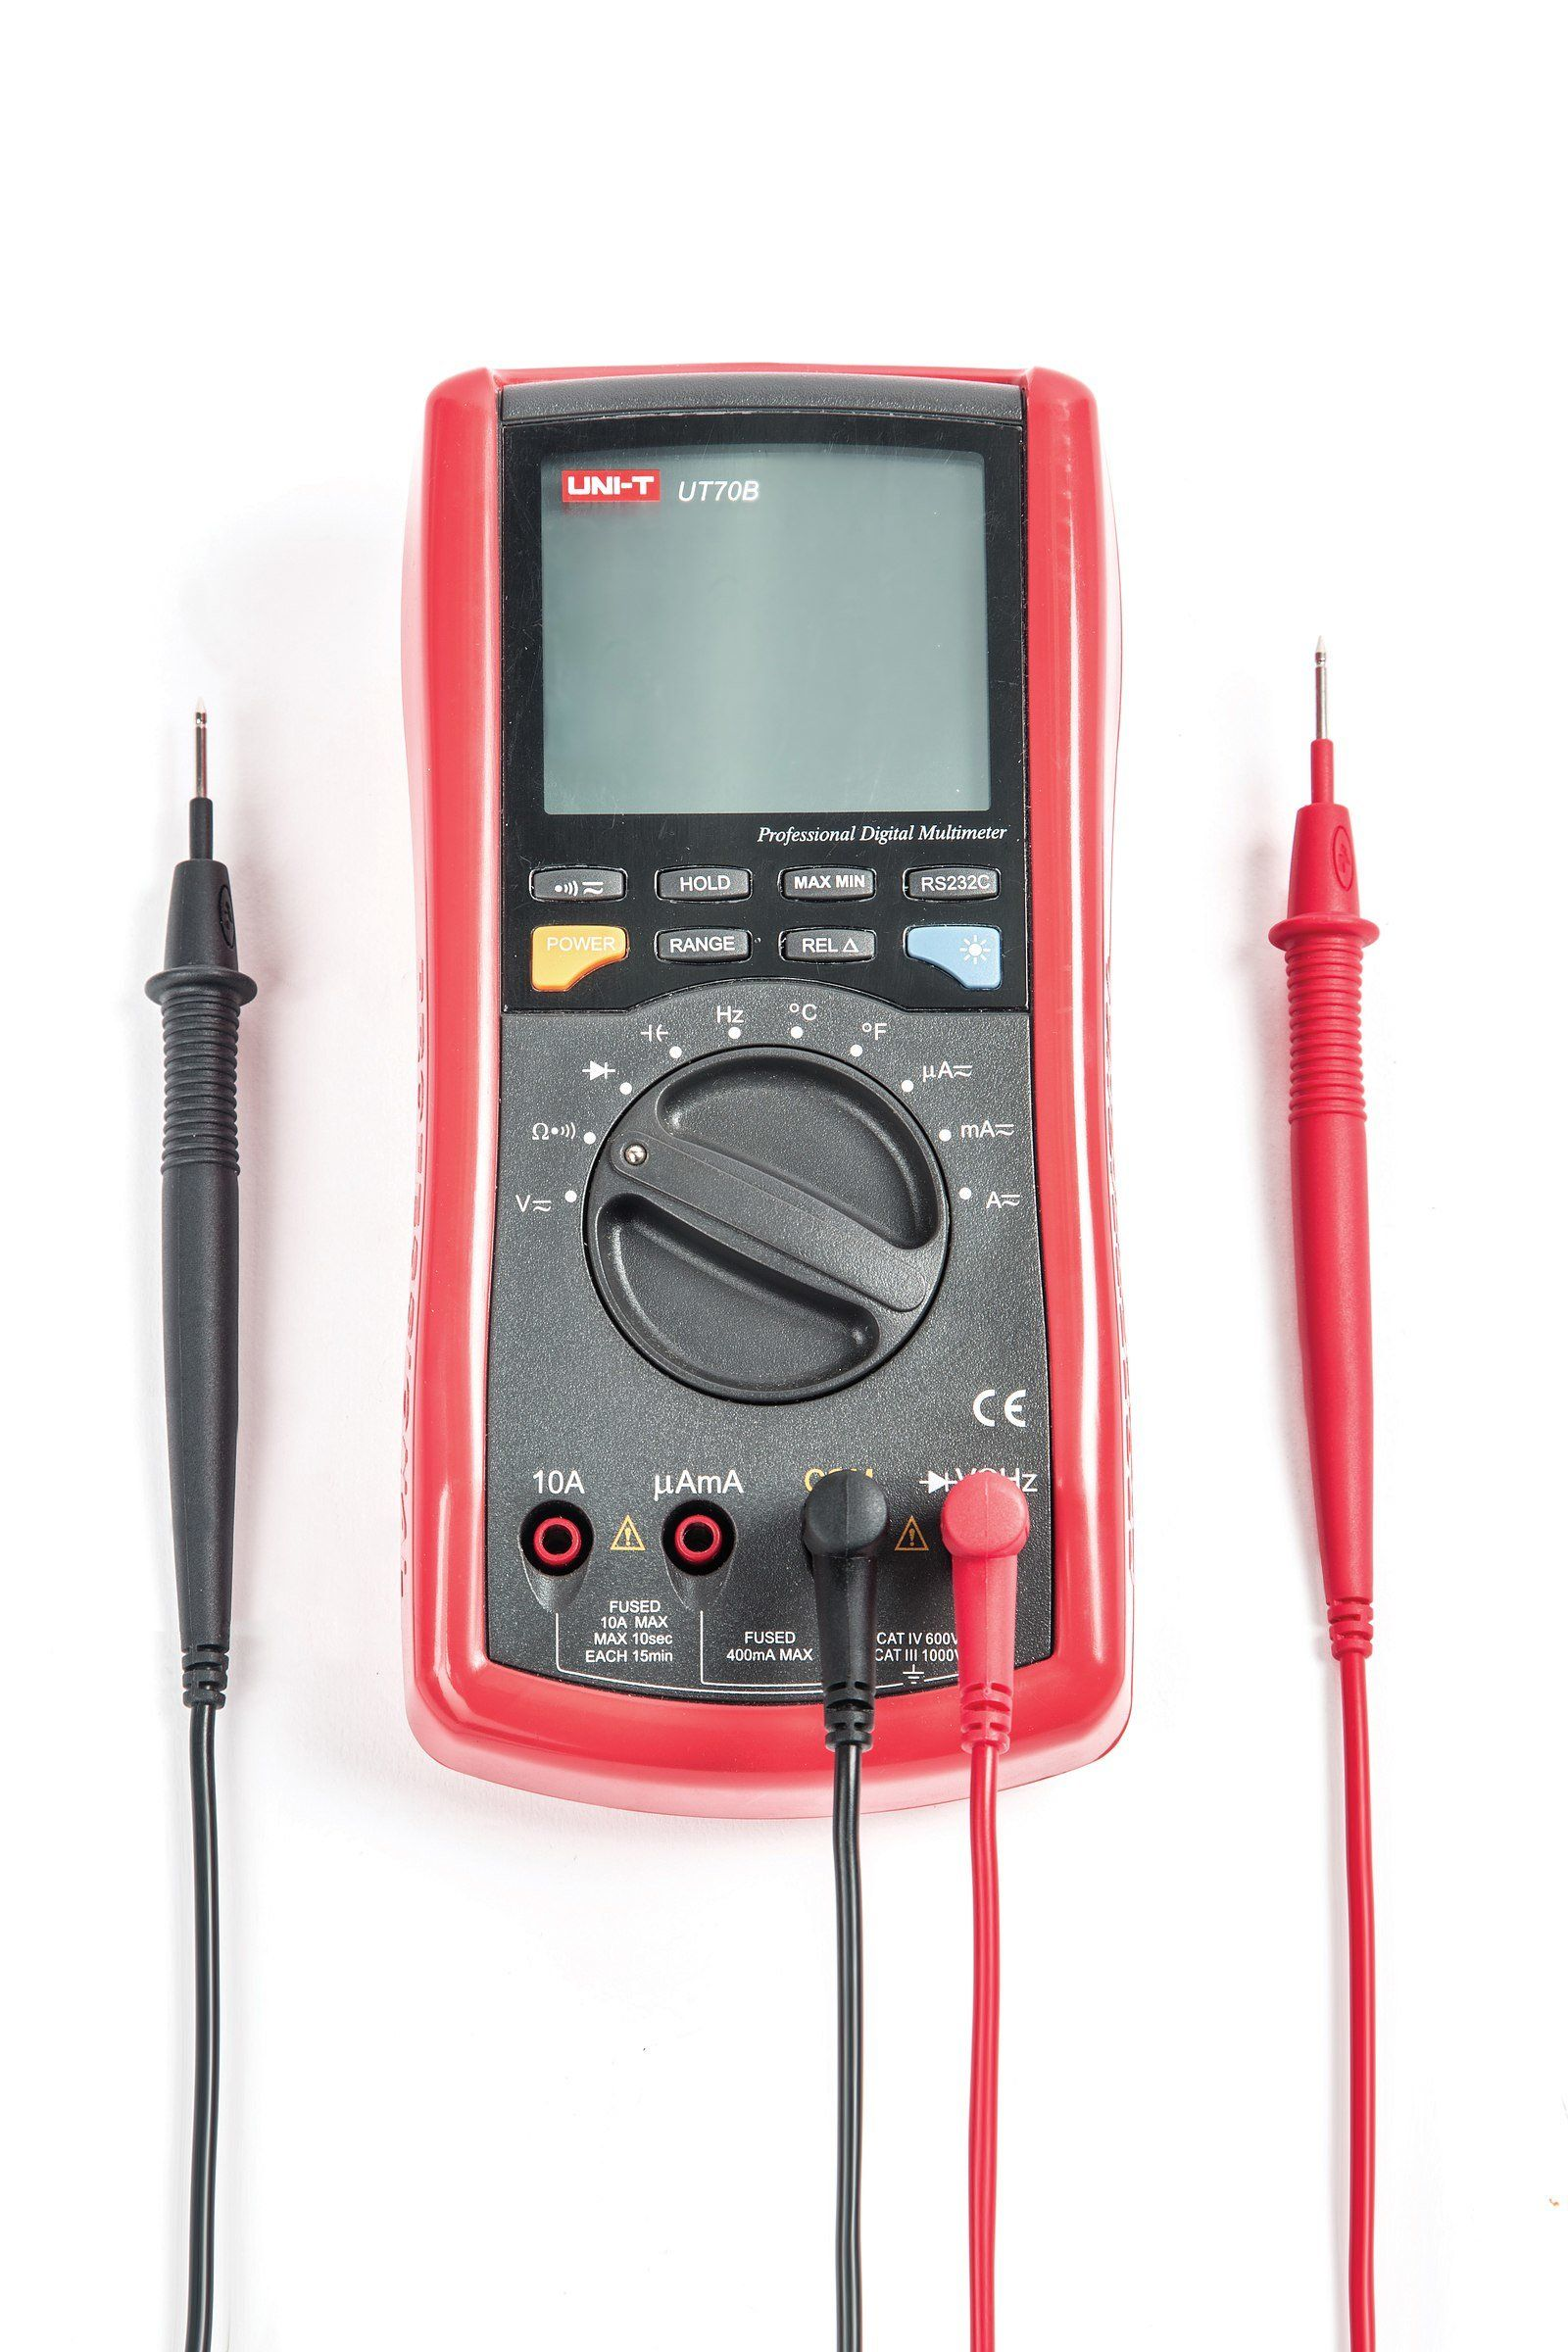 Multimeter Basics: Measuring Voltage, Resistance, and ... on can filter, can dimensions, can design, can go, can wire, can fan, can frame,